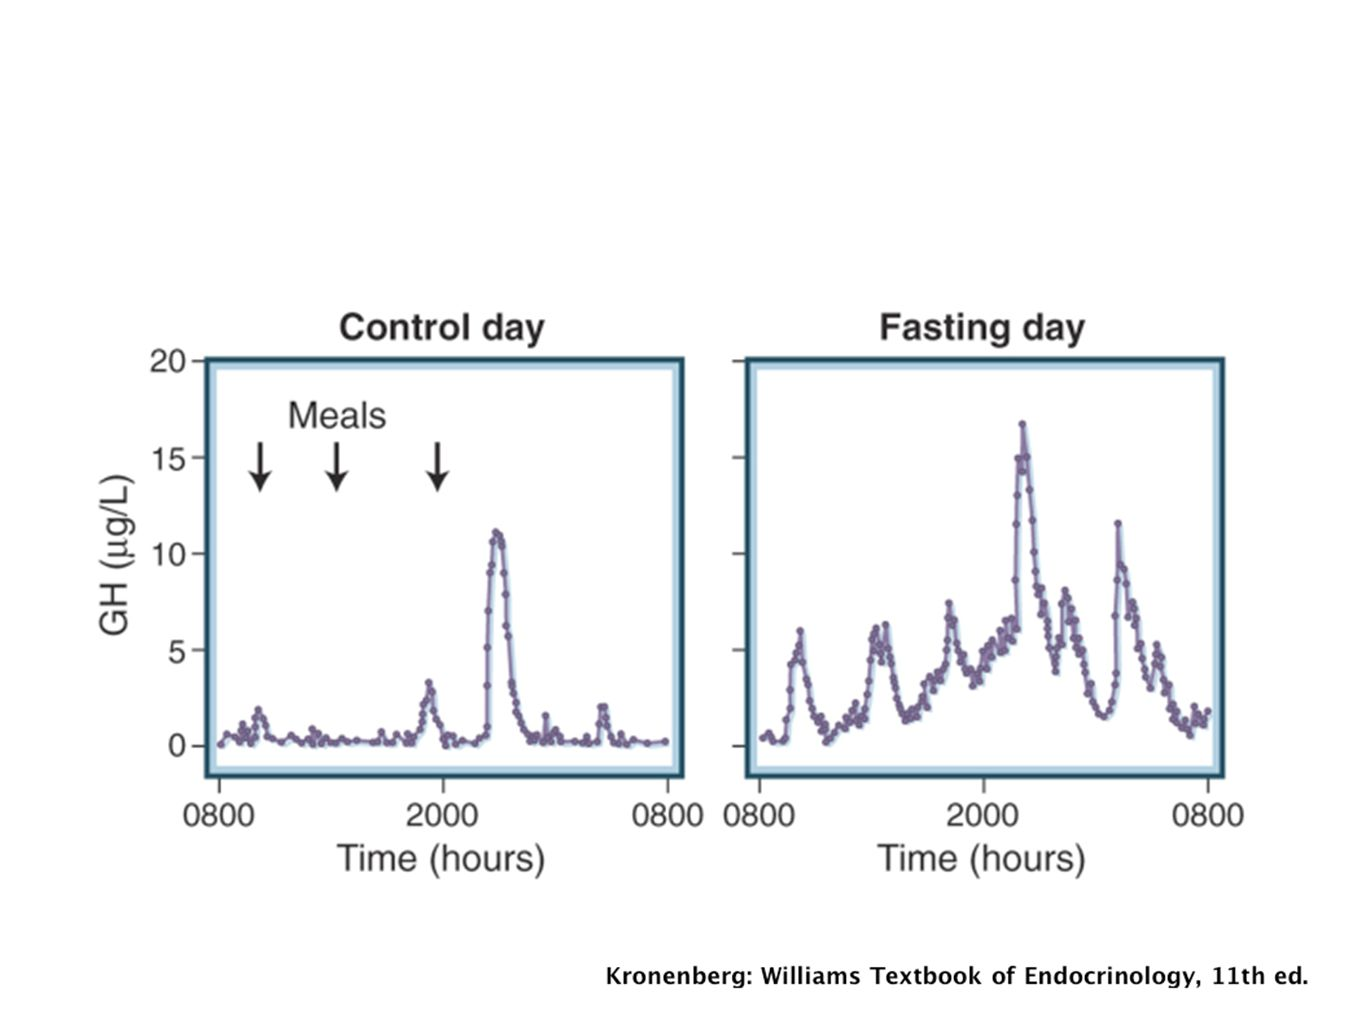 Effect of fasting on growth hormone secretion patterns in a healthy male subject.